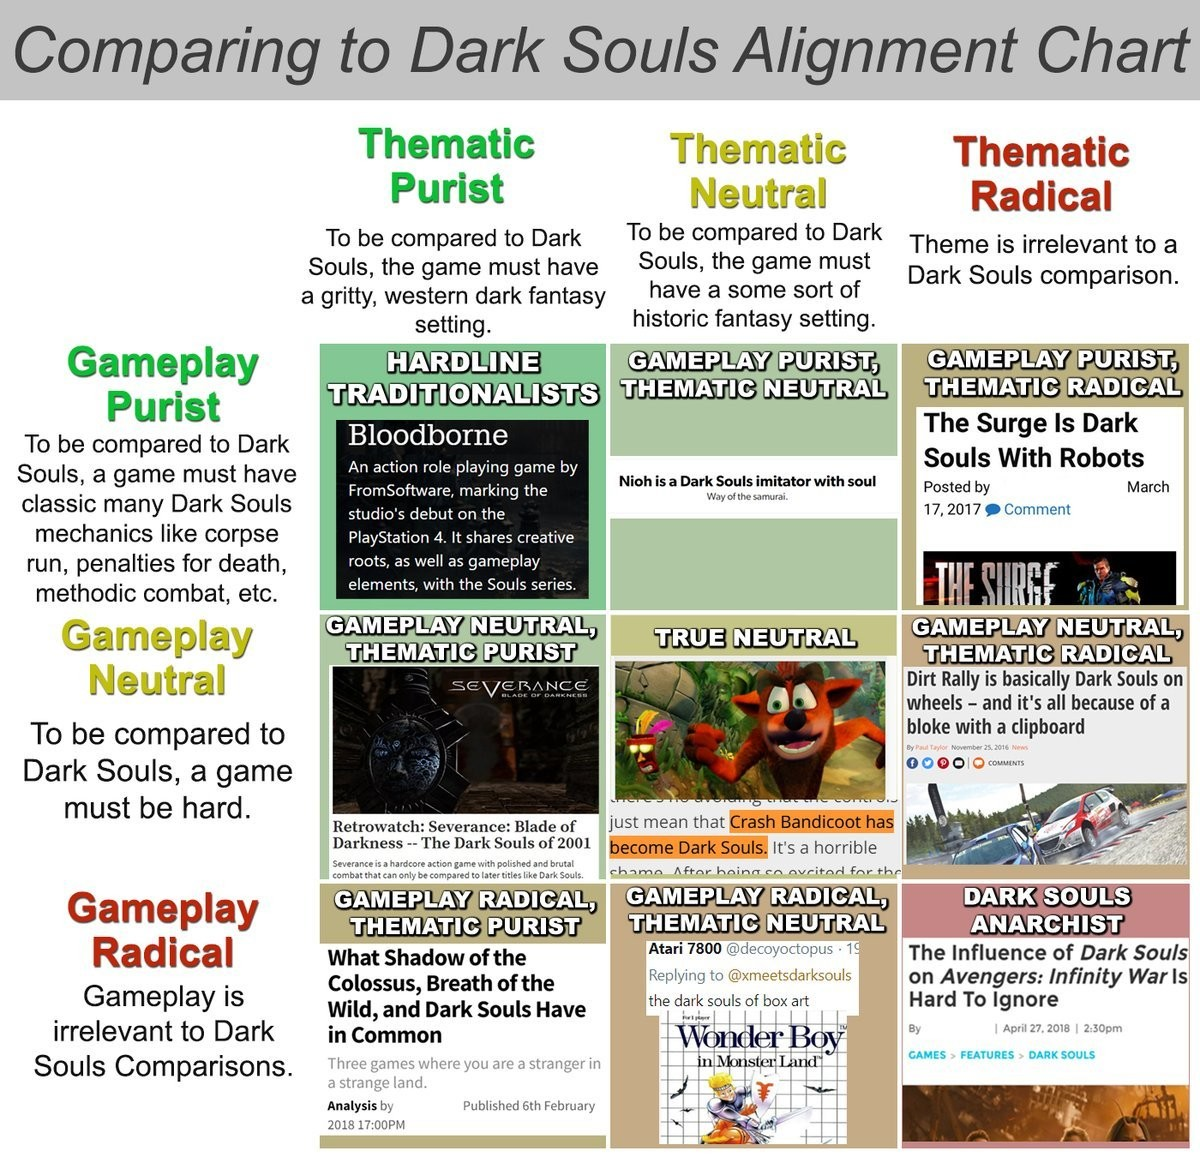 The Dark Souls of alignment charts. . Thematic Thematic Thematic Wrist Neutral Radical To be o: impared to Dark To be compared to Dark Theme is irrelevant to a